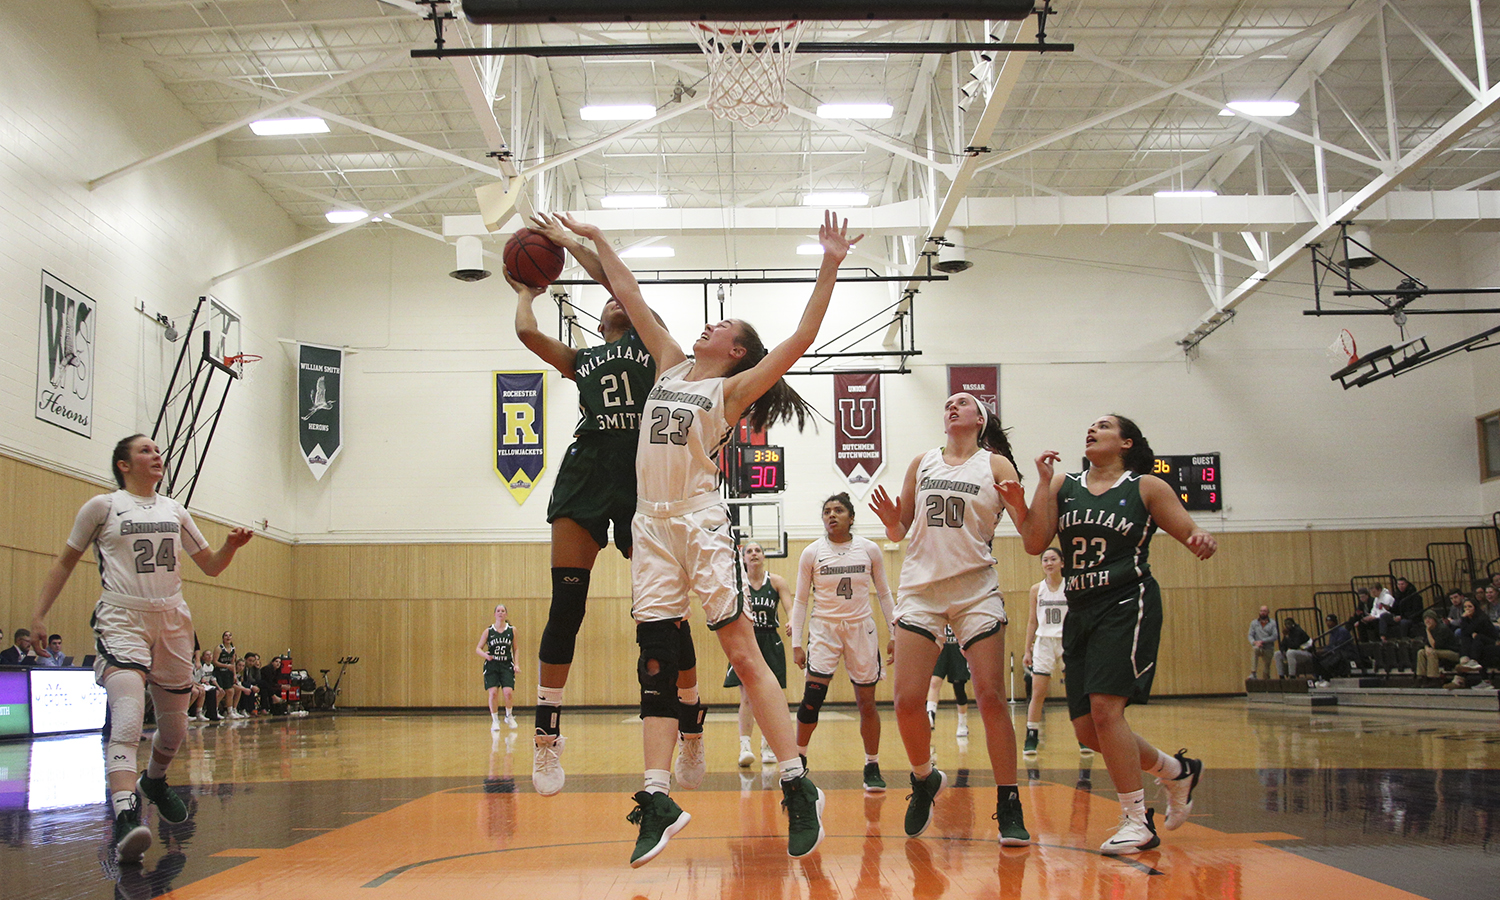 Mia Morrison '19 tests the defense during William Smith's 77-45 victory over Skidmore College.